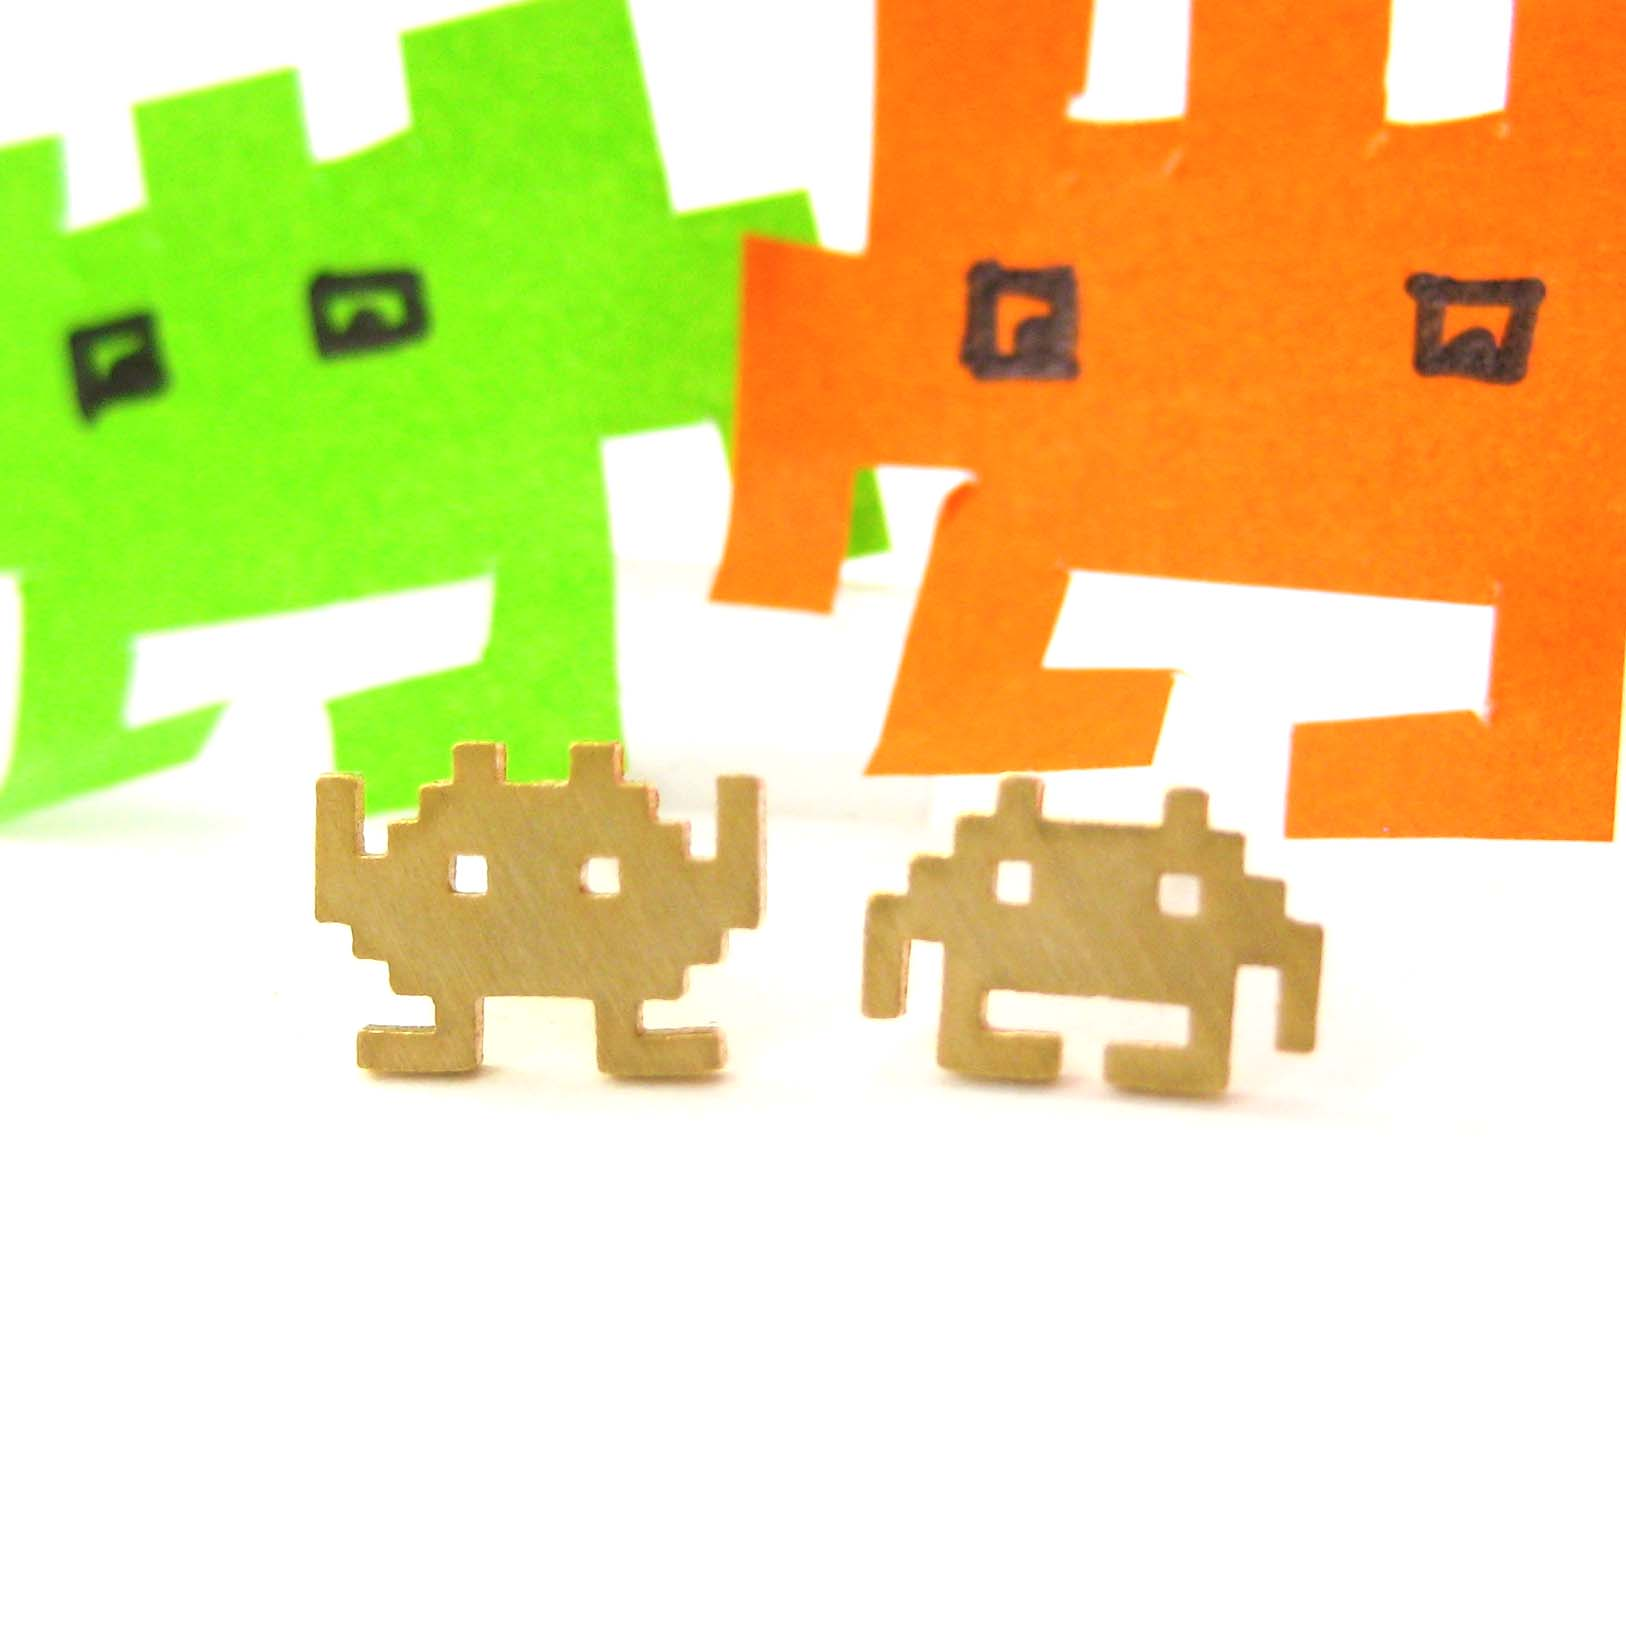 Space Invaders clipart original Game Arcade Pixel Pixel Allergy